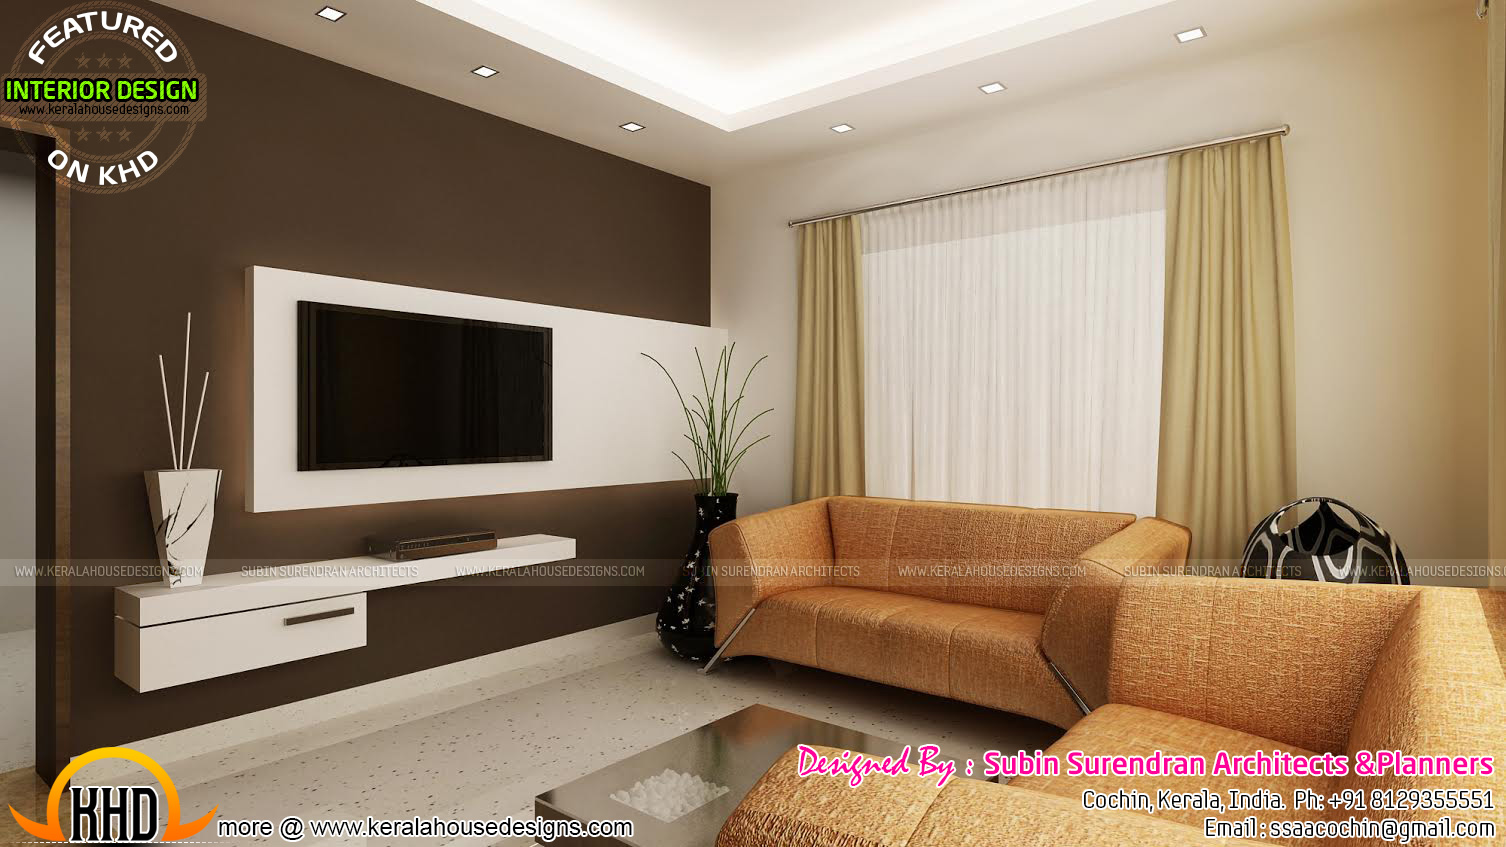 Living rooms modern kitchen interiors in kerala kerala for Interior designs rooms